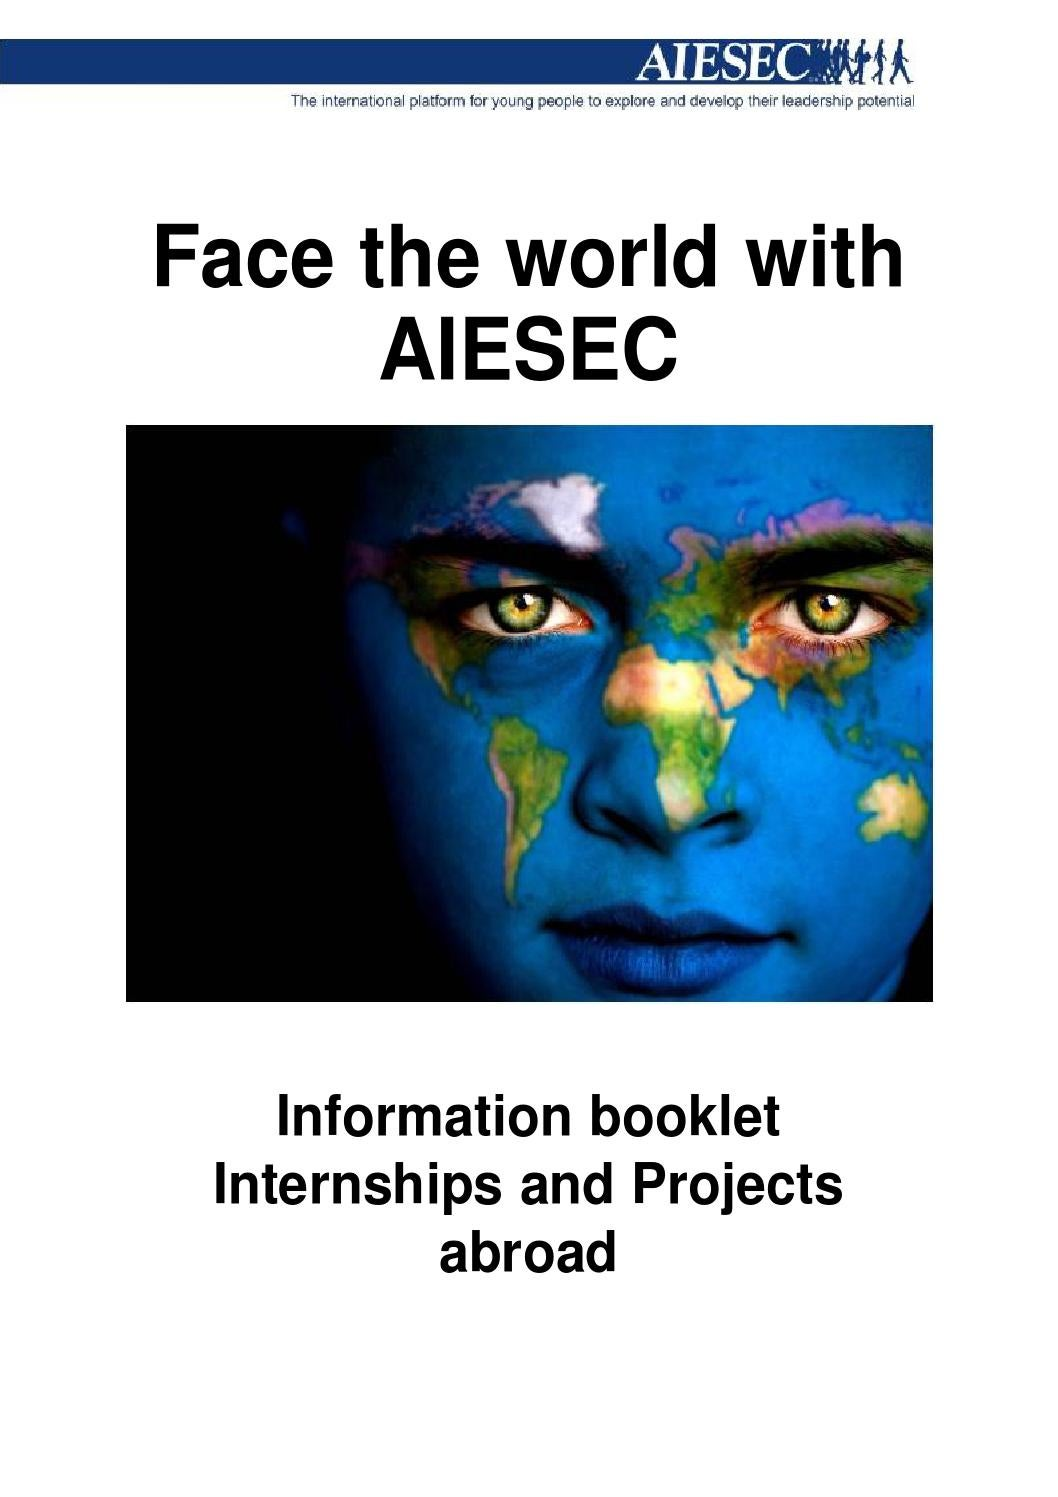 Aiesec Hannover aiesec info bookletaiesec tilburg - issuu